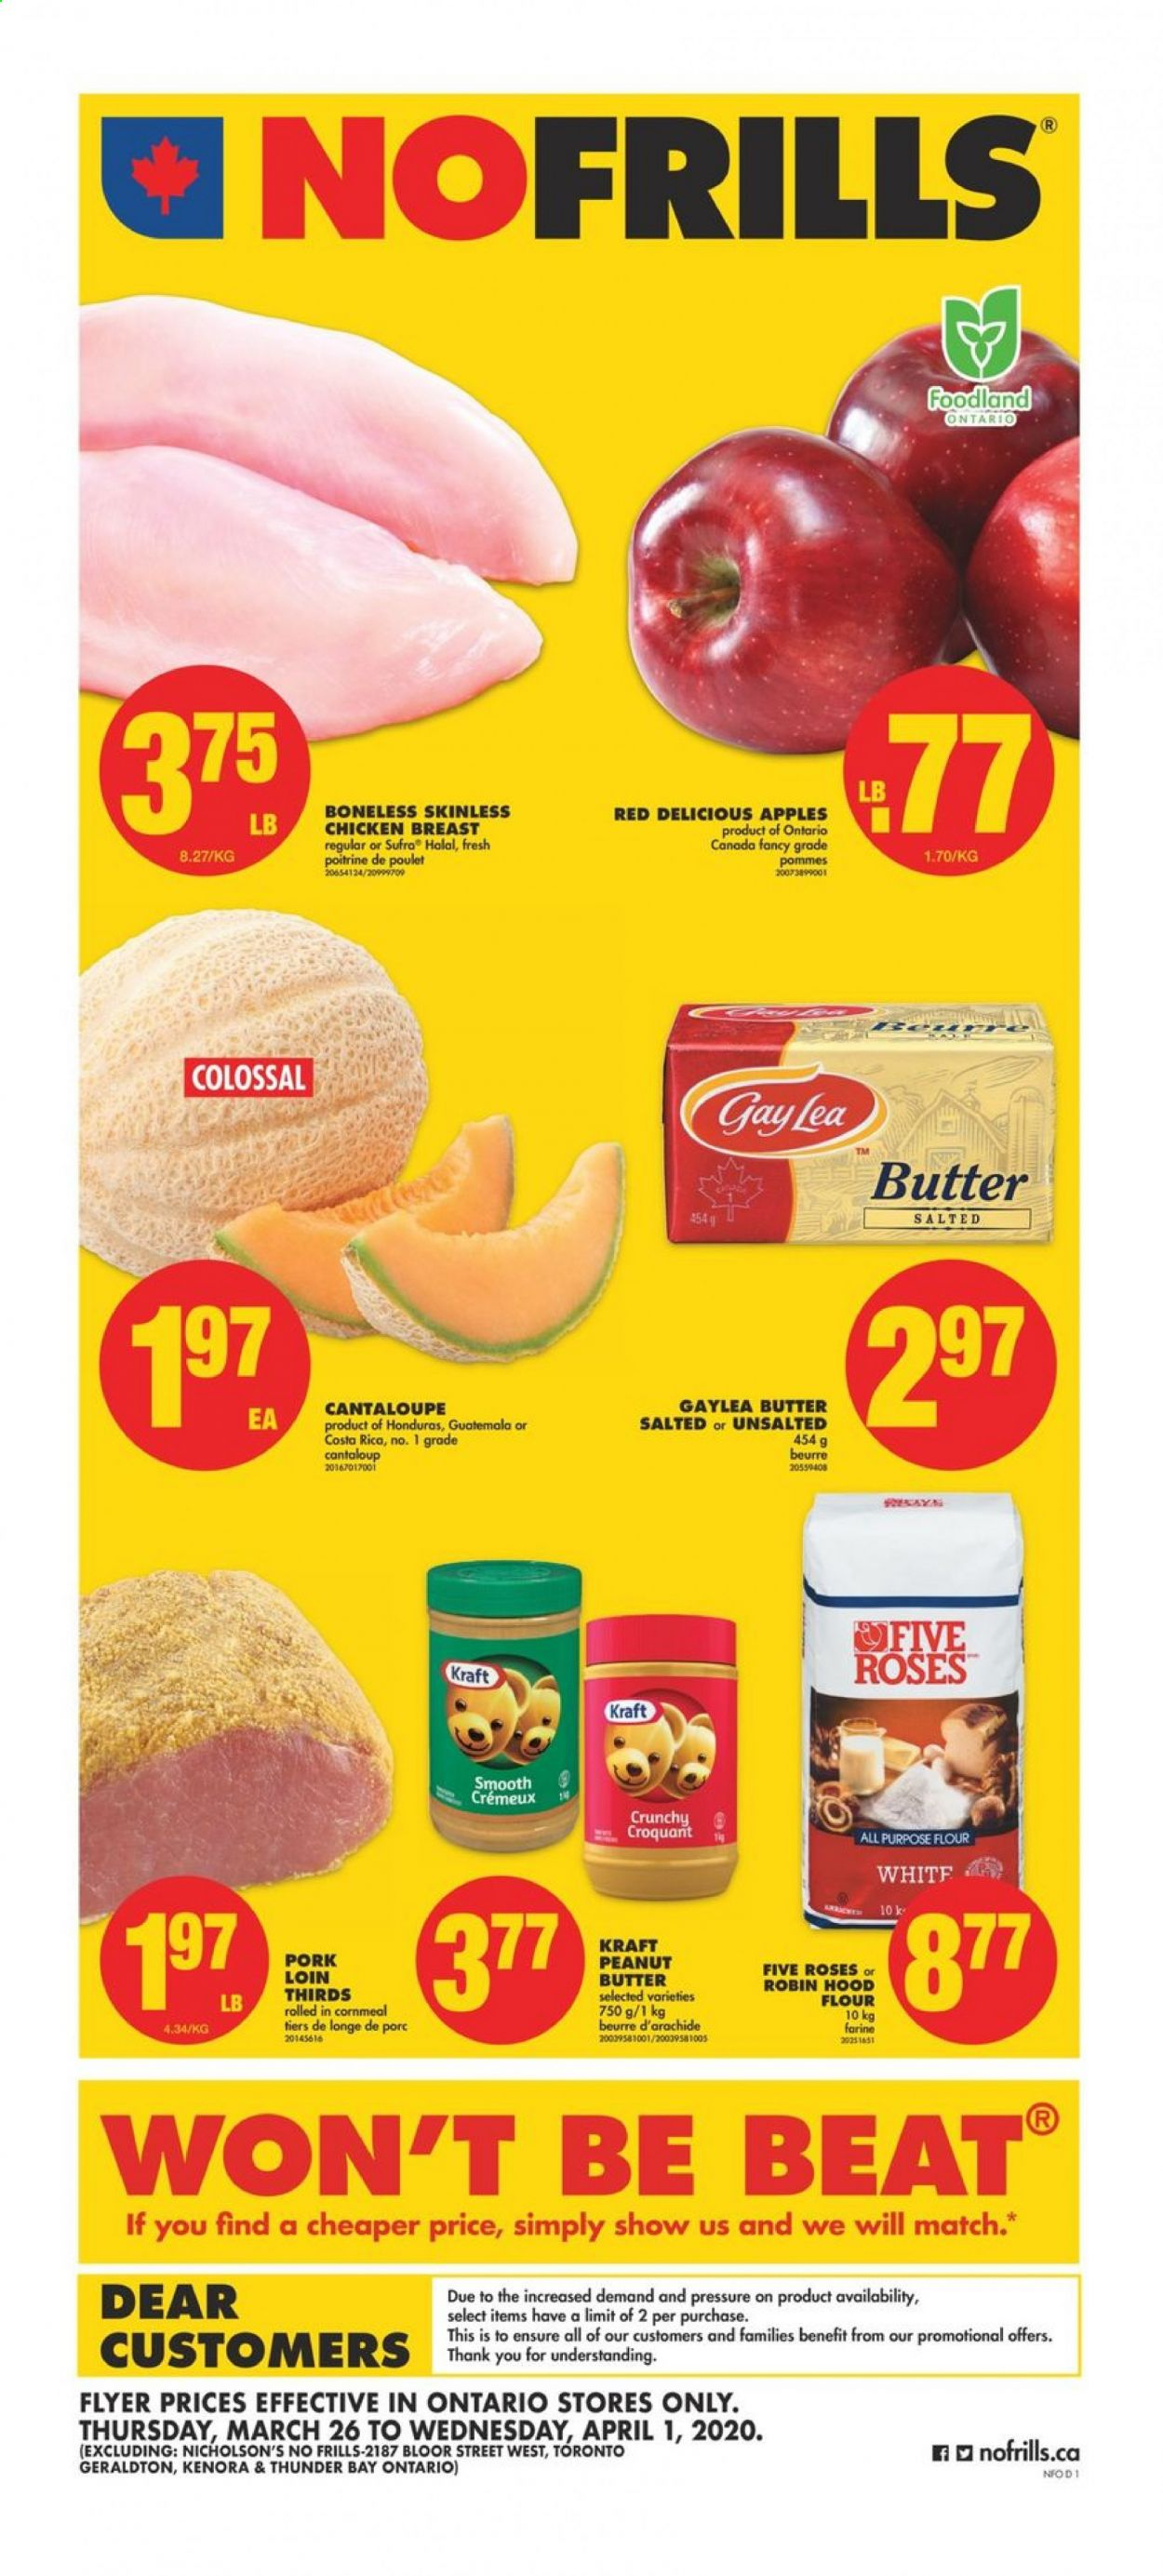 No Frills Flyer  - March 26, 2020 - April 01, 2020. Page 1.